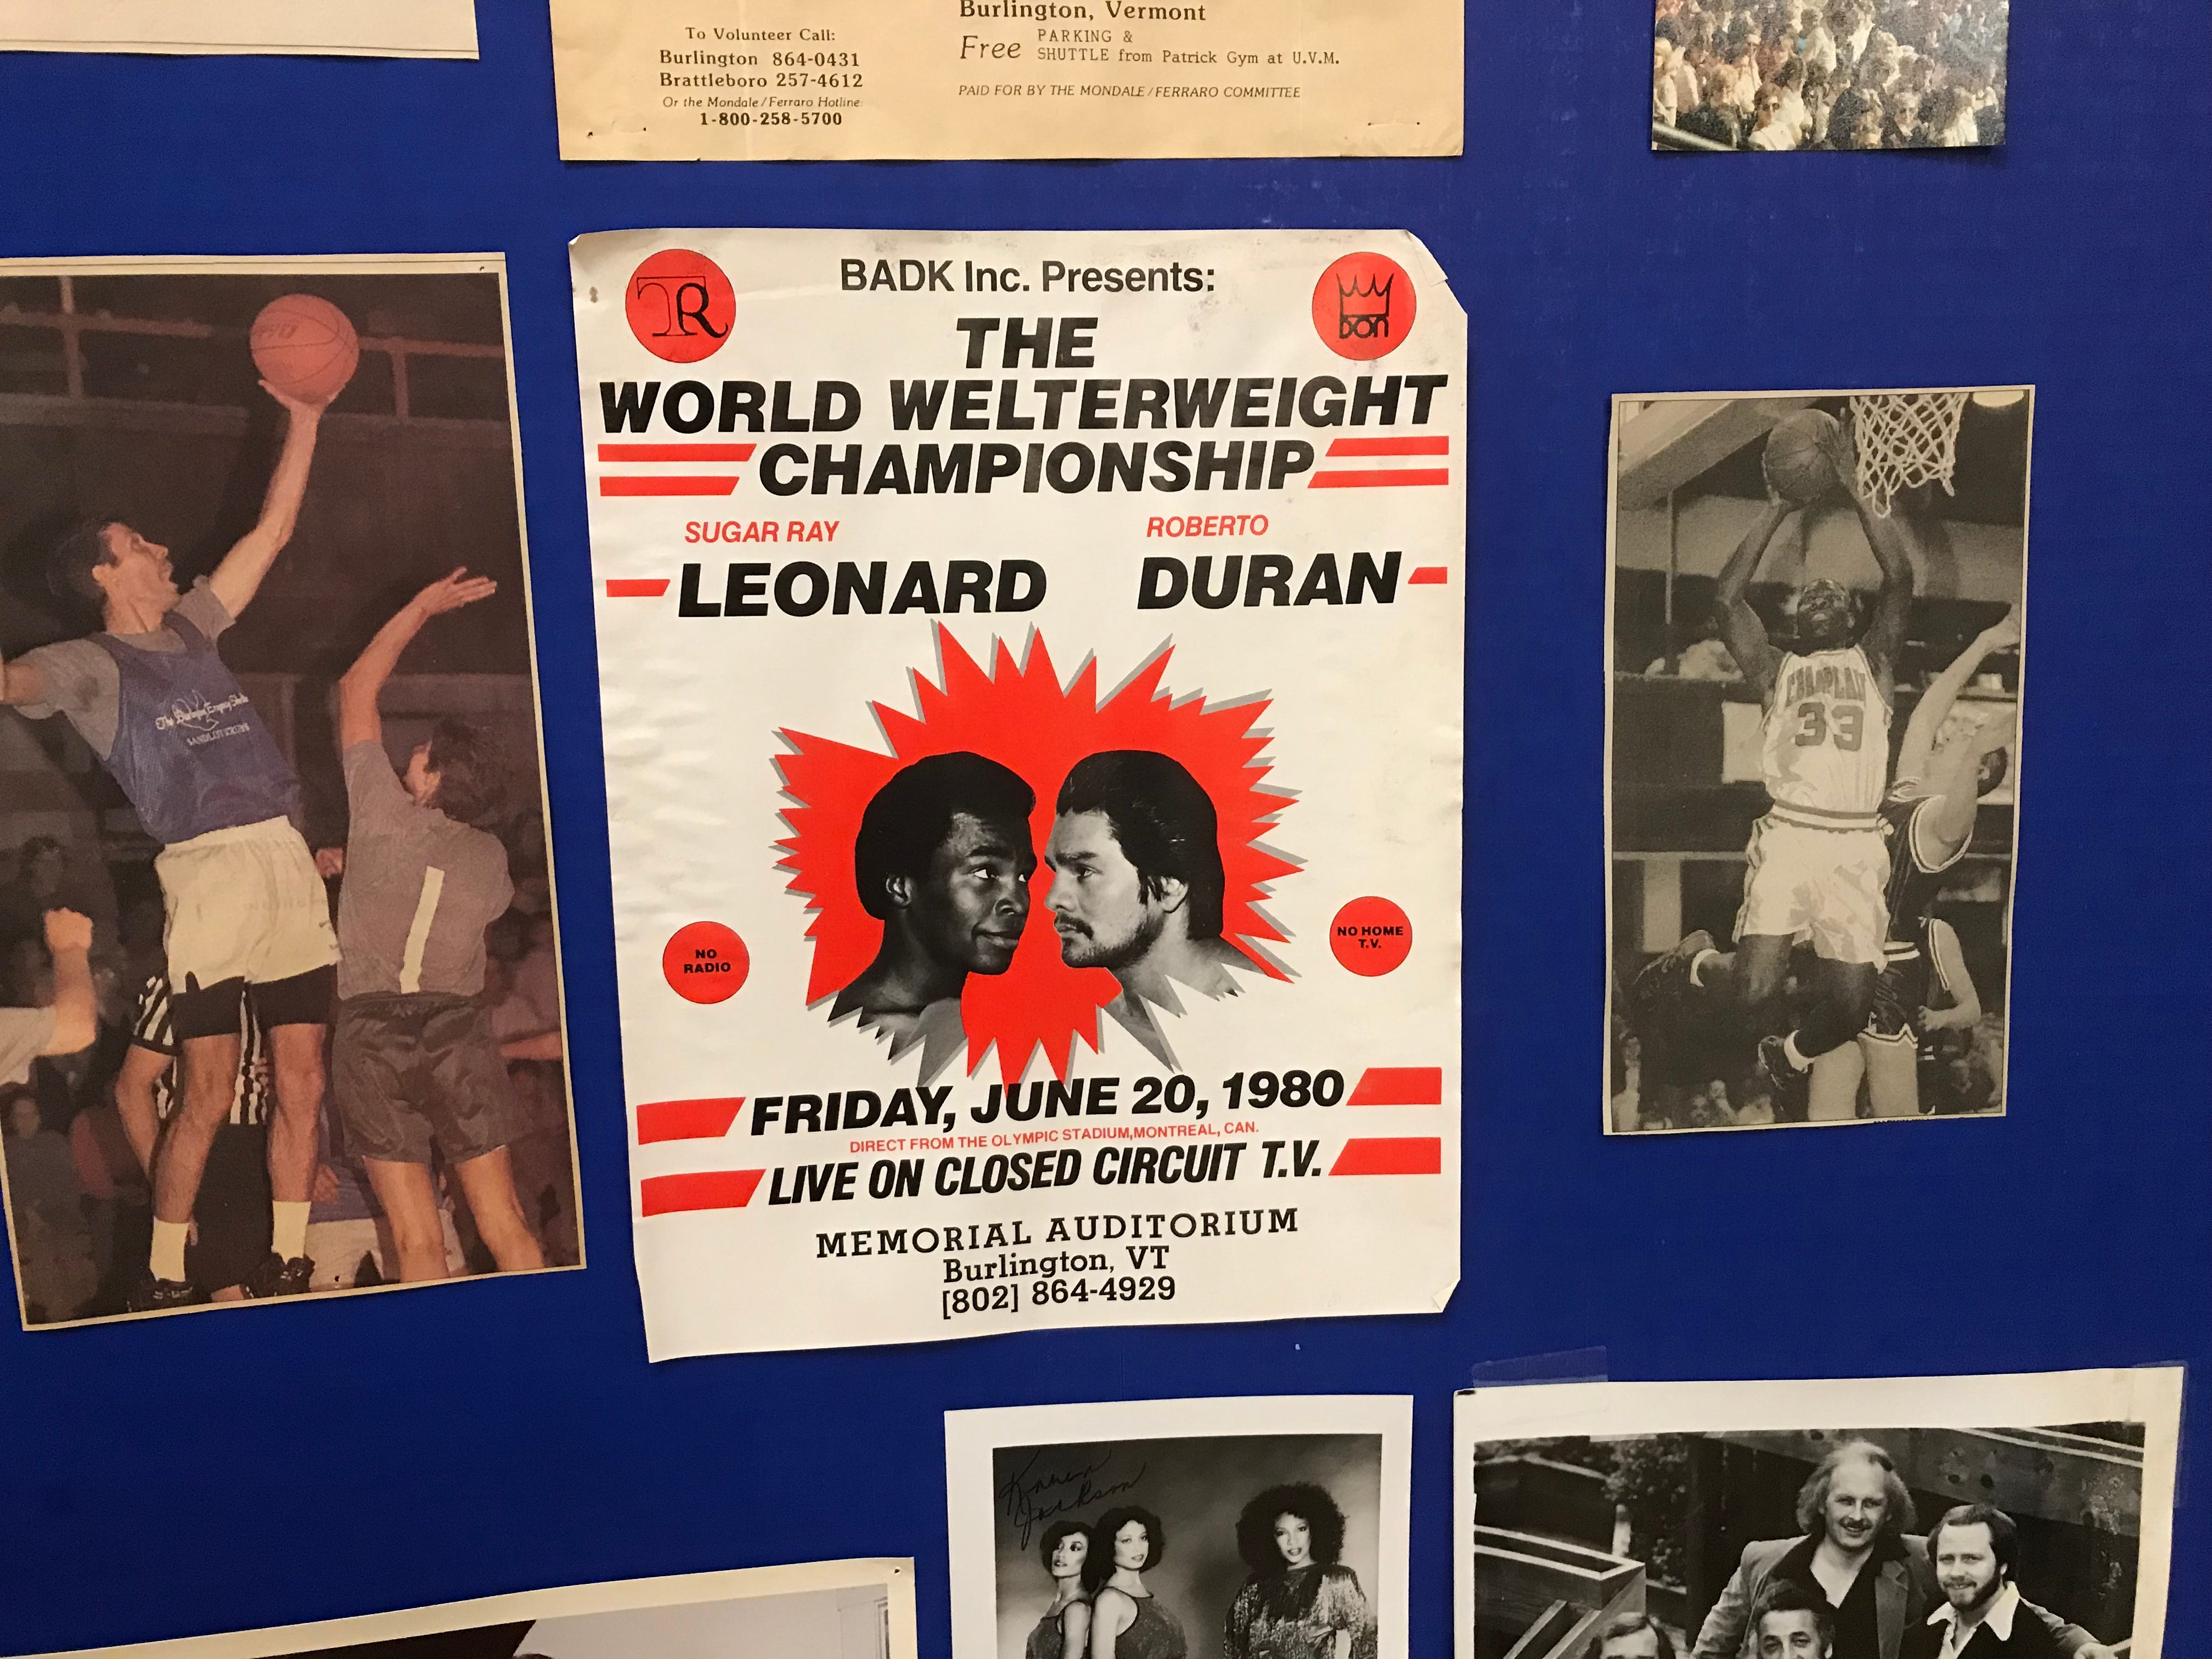 A display of sporting events at Memorial Auditorium in Burlington includes a championship bout between Sugar Ray Leonard and Roberto Duran. Photographed Sept. 13, 2018.